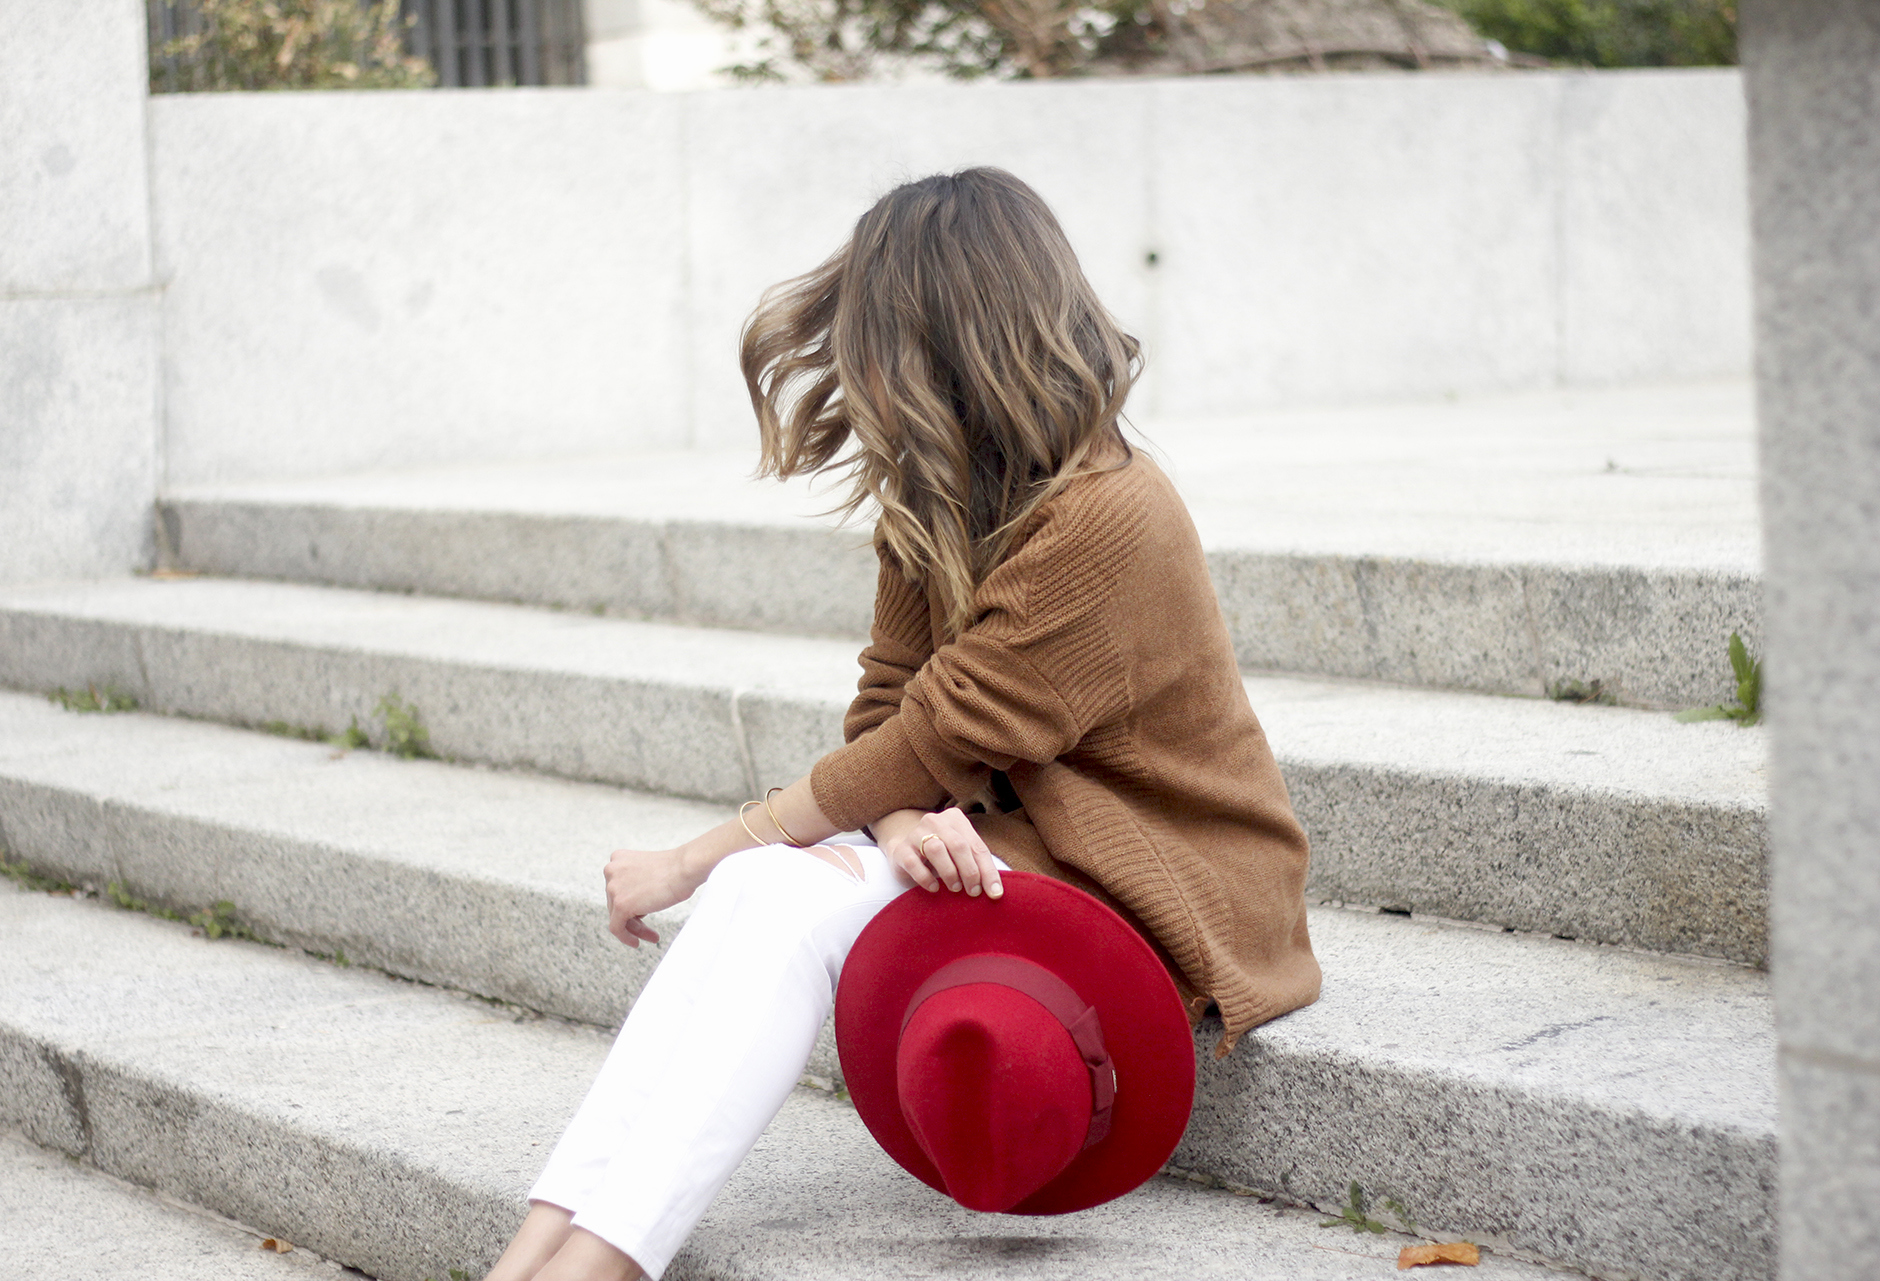 Turtleneck Sweater white jeans red heels red hat uterqüe outfit10